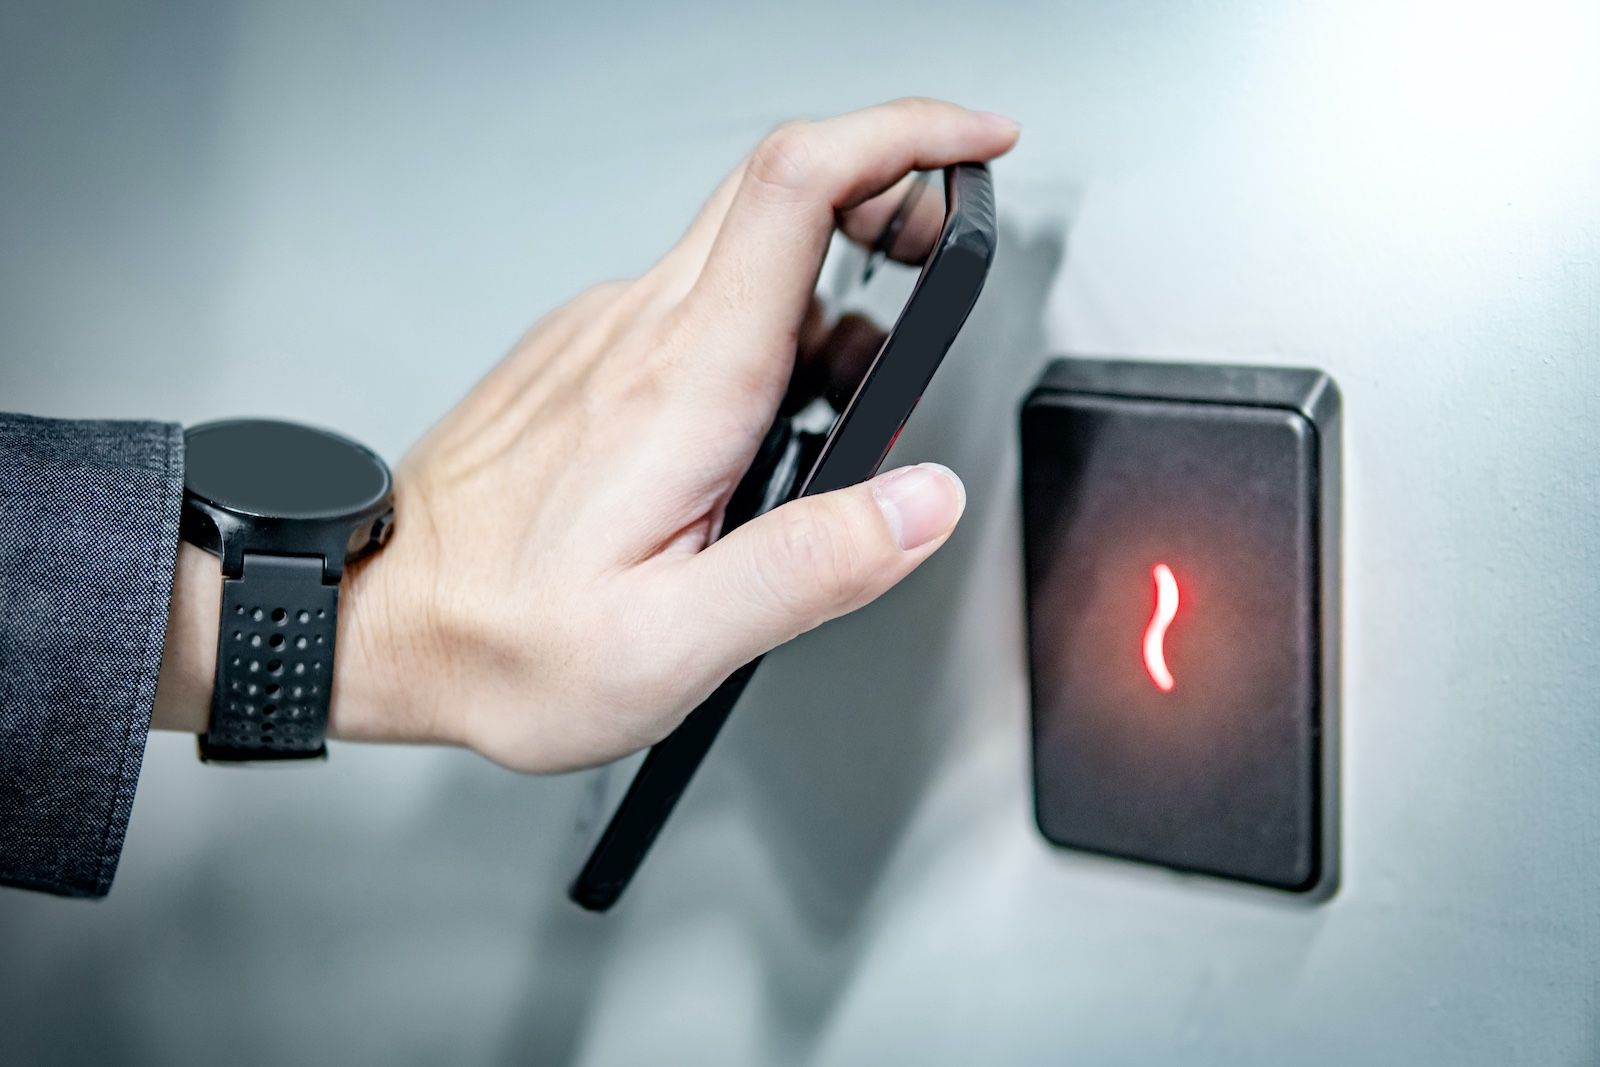 Access Control Systems Market set For Strong Growth